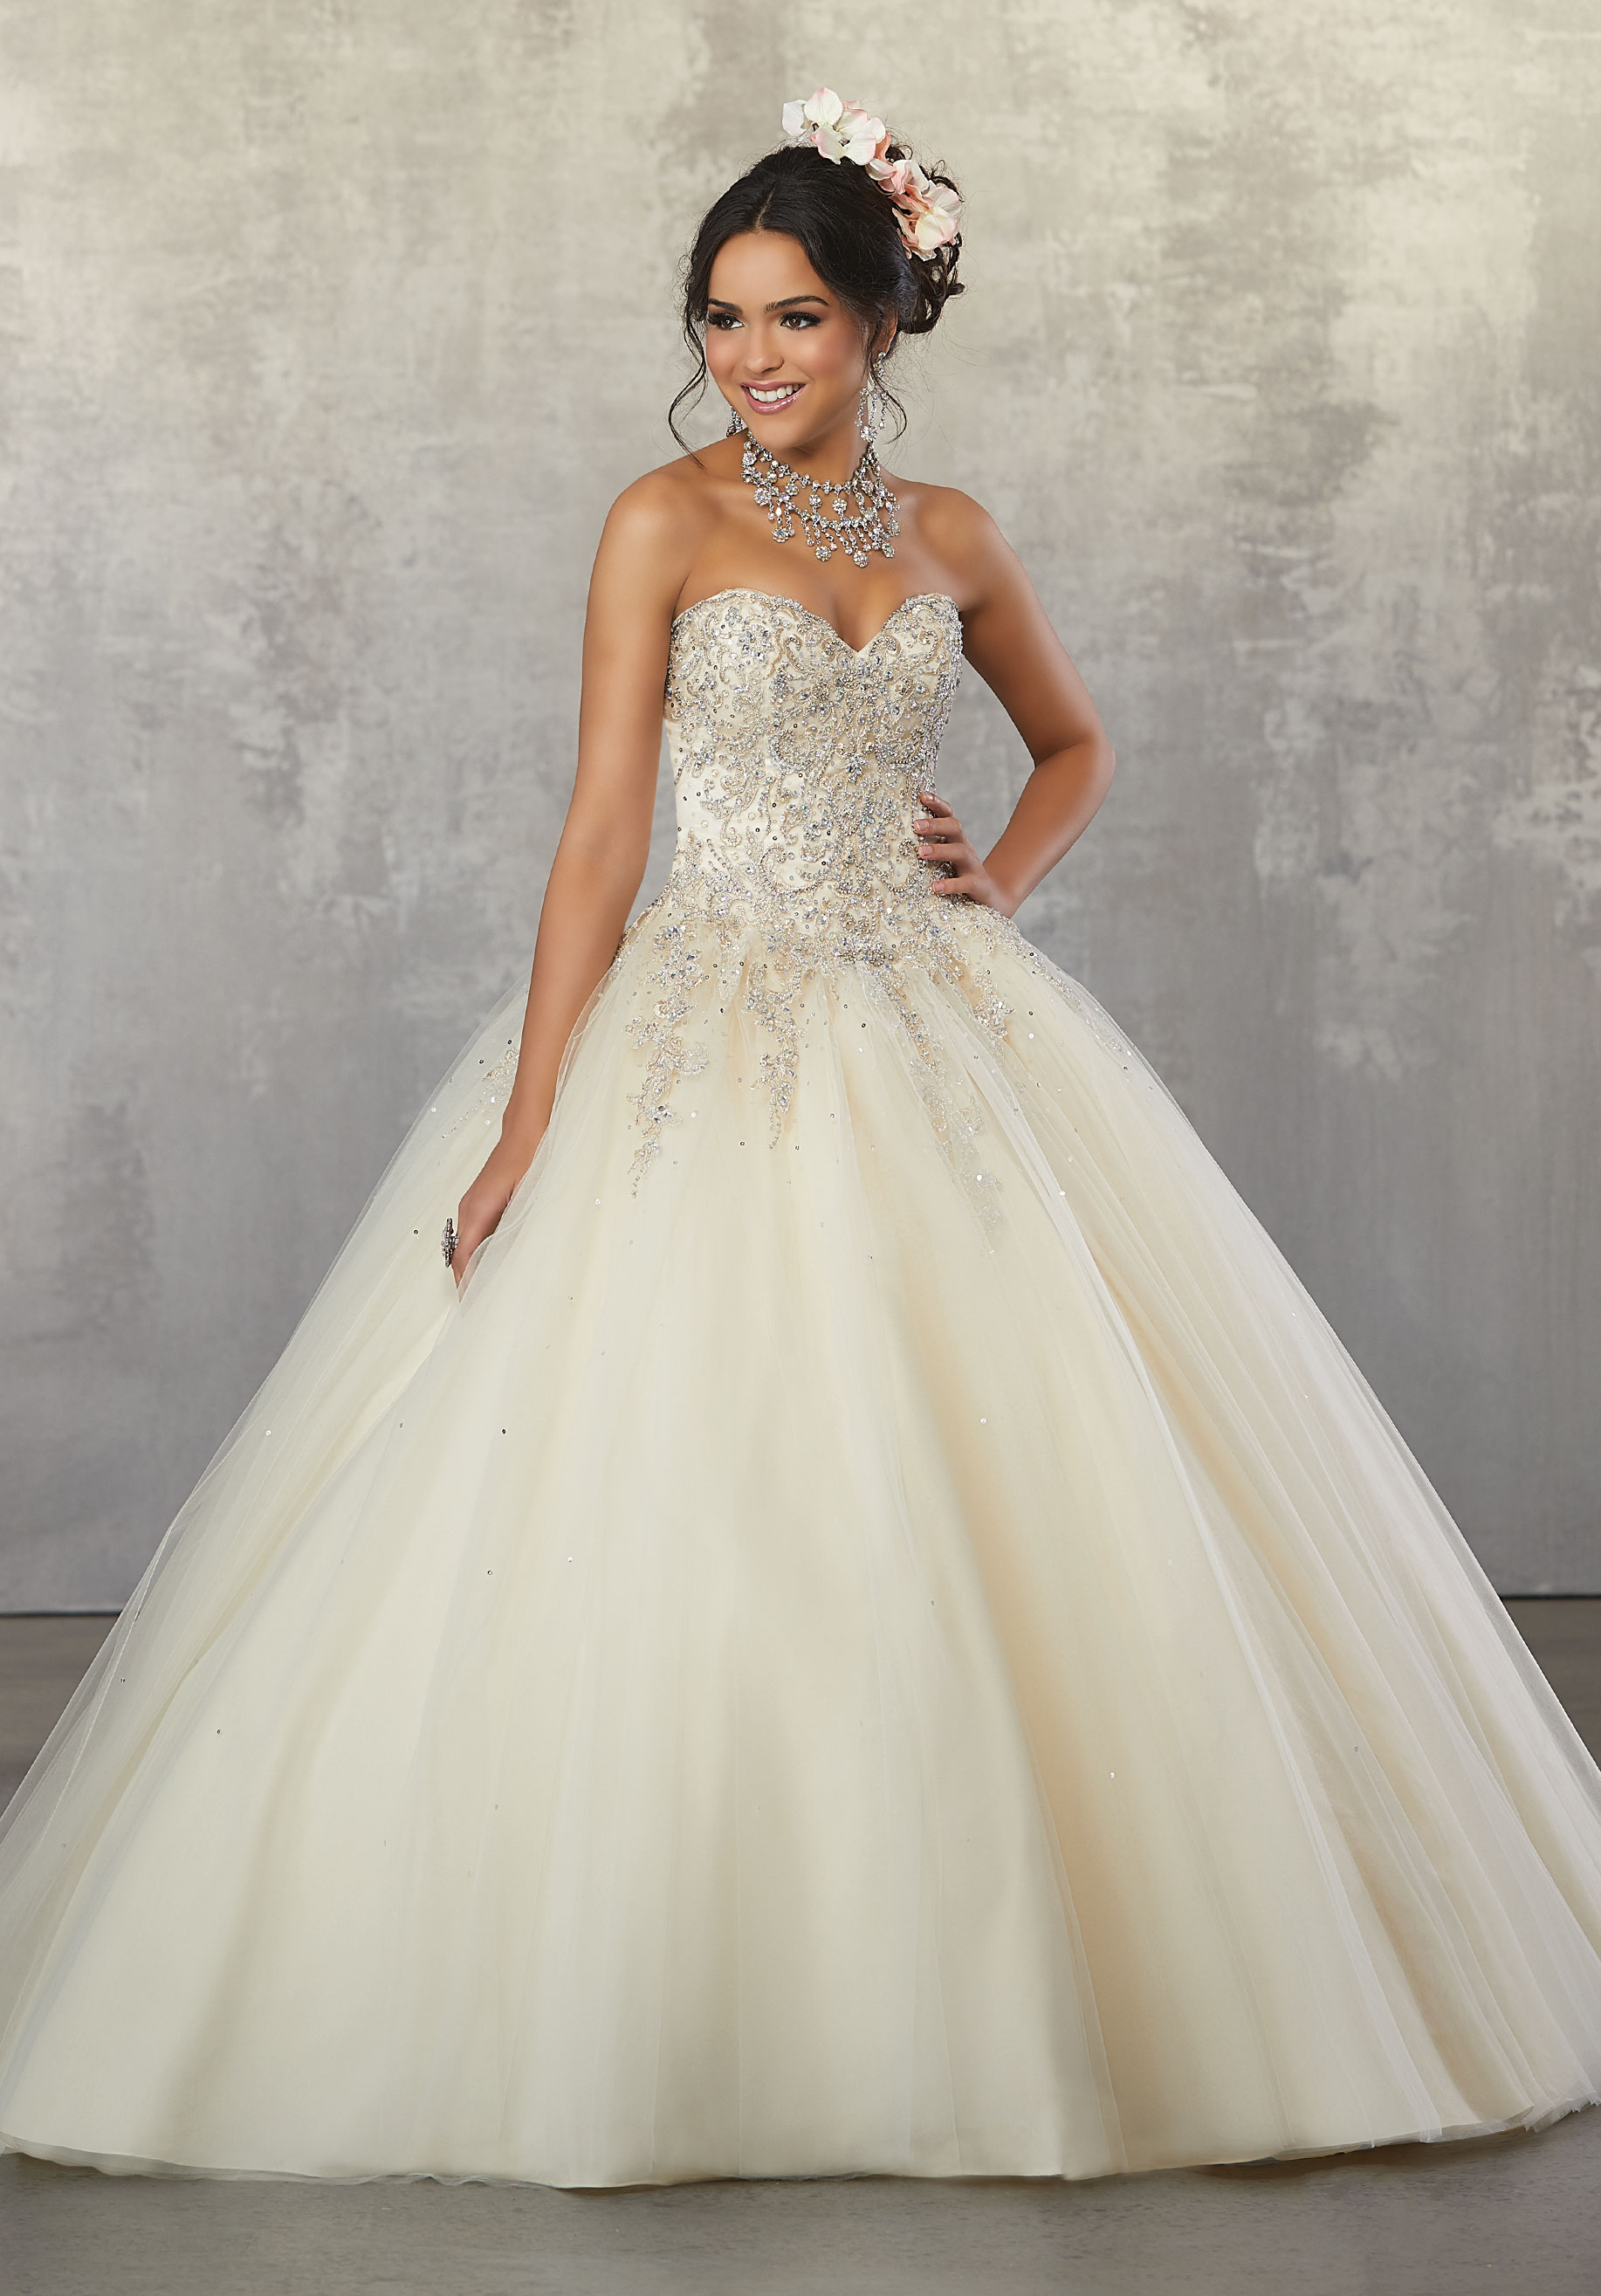 Rhinestone And Crystal Beaded Metallic Embroidery On Tulle Ball Gown Morilee Quinceanera Dresses Quinceanera Dresses Pink Quince Dresses